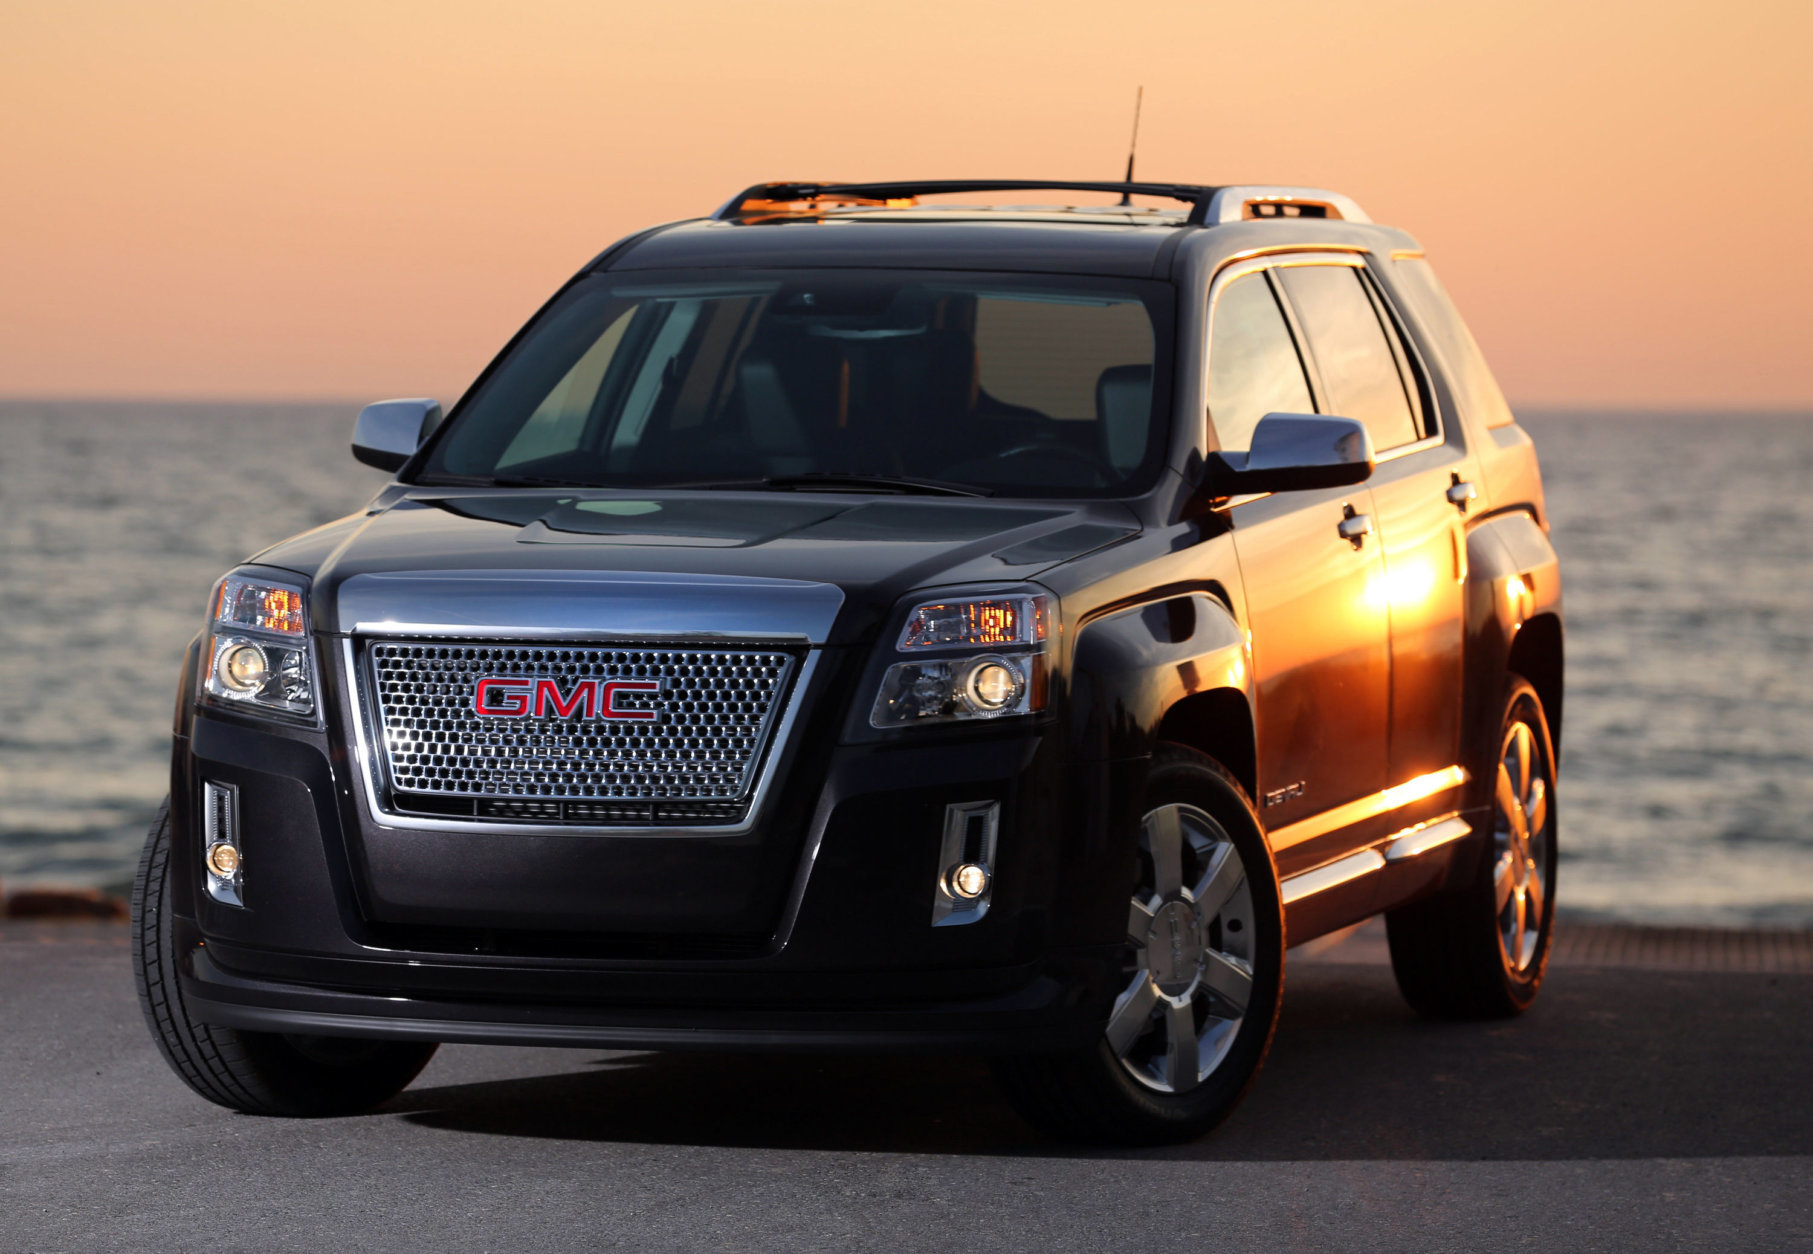 Best Used Small SUV/Crossover for Teens:  The 2014 GMC Terrain  (Courtesy General Motors)